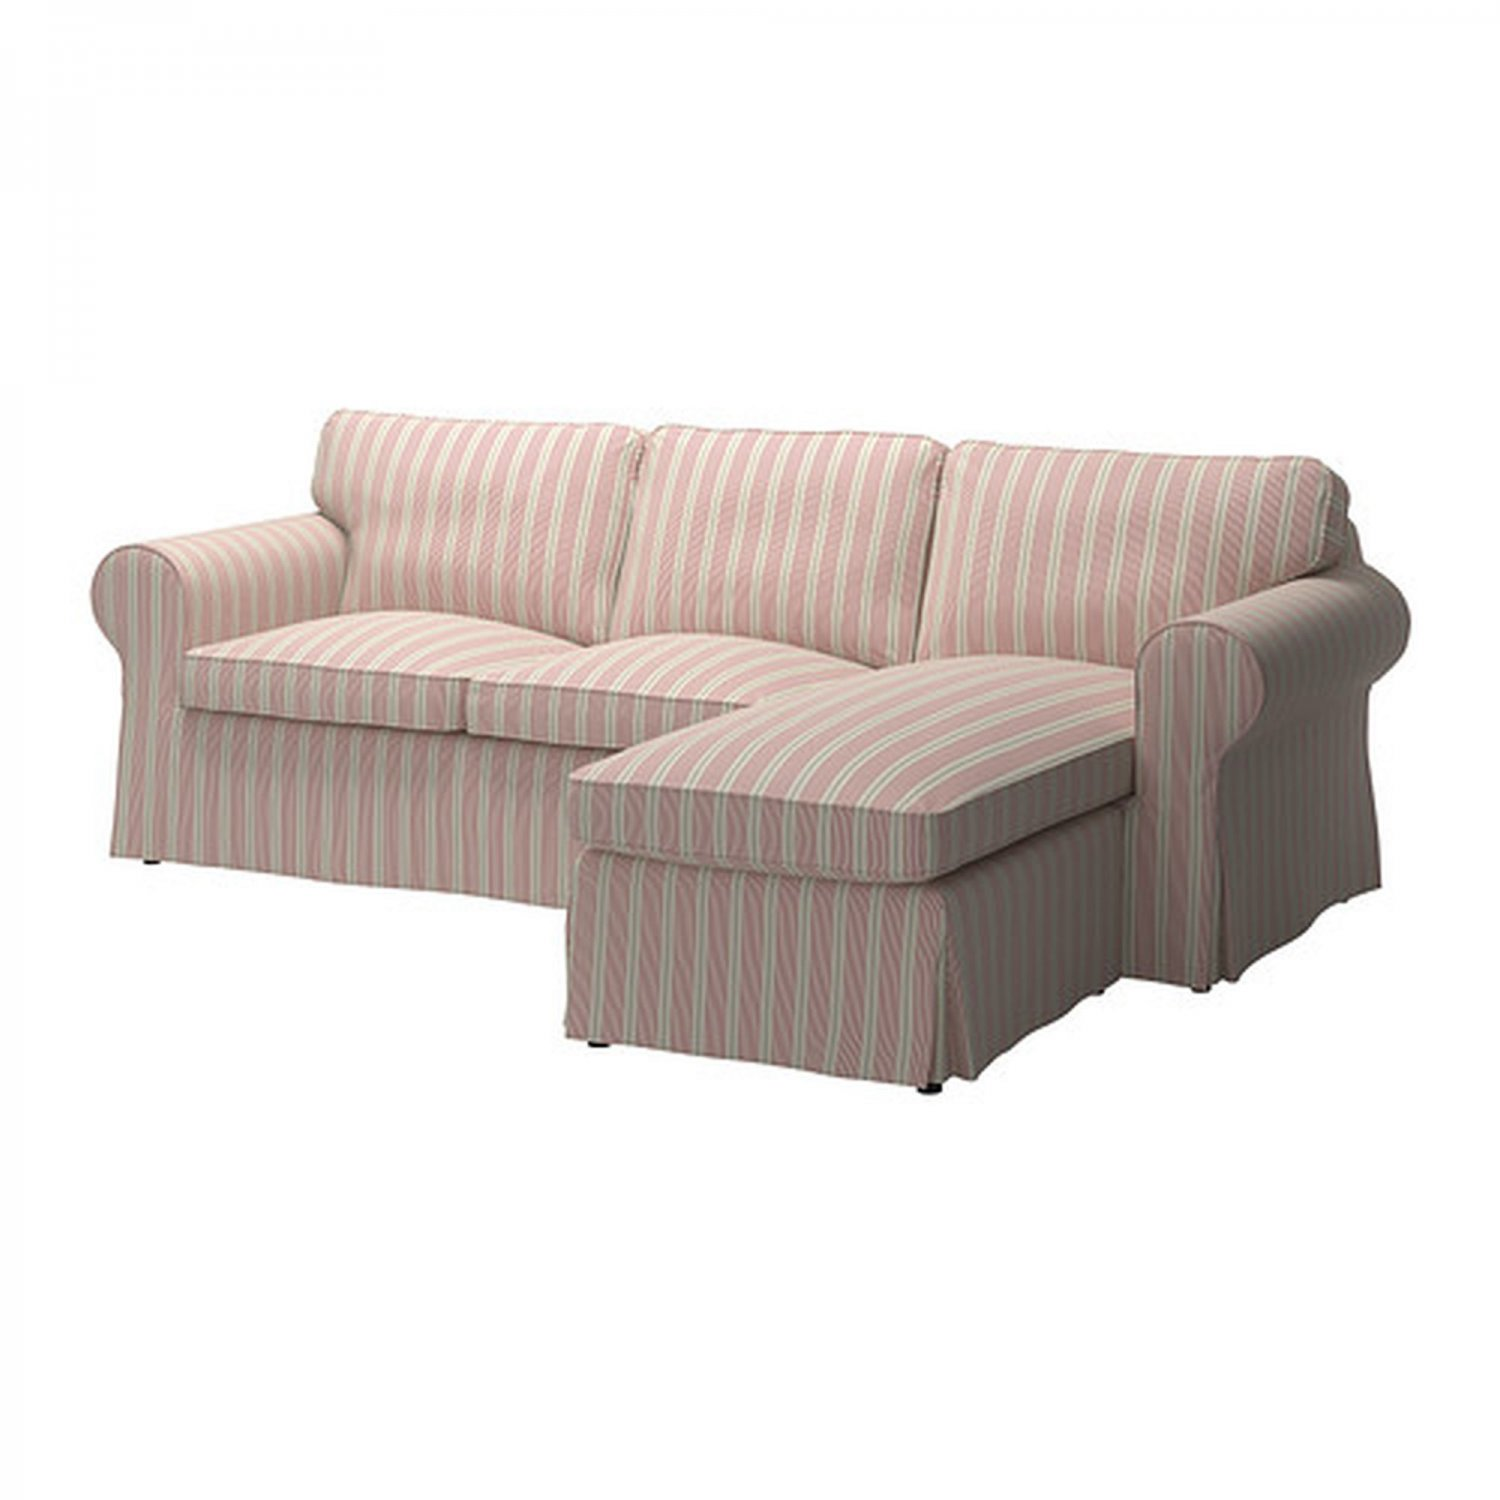 chaise sofa bed ikea rent a in hyderabad ektorp loveseat w lounge cover 3 seat